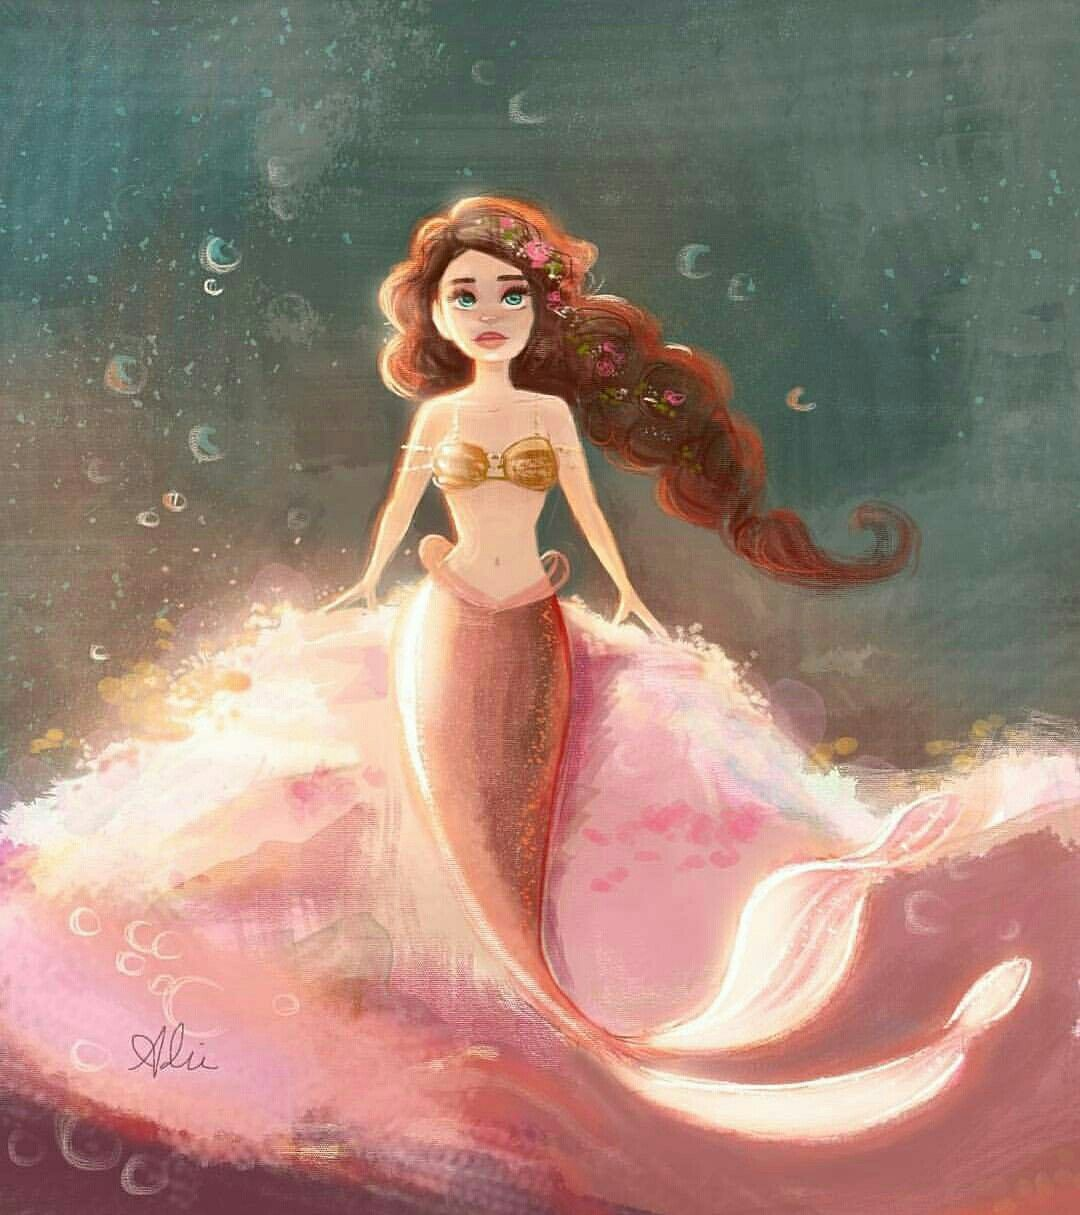 Beautiful Mermaid Drawing Tips Tattoo Project Merfolk Art Mythical Creatures Pisces Ariel Unicorns